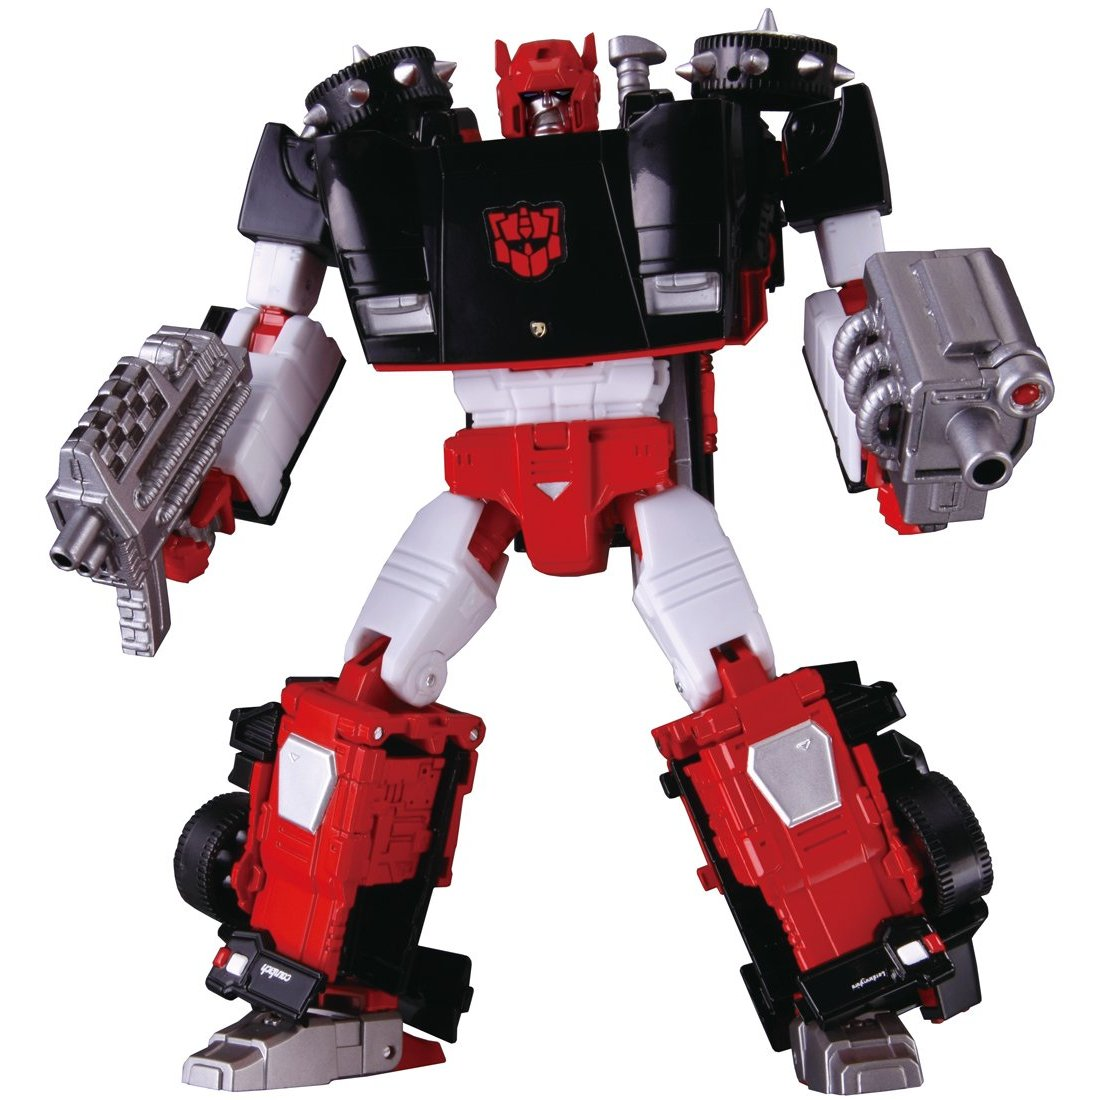 High Res Pics Of Masterpiece G2 Sideswipe